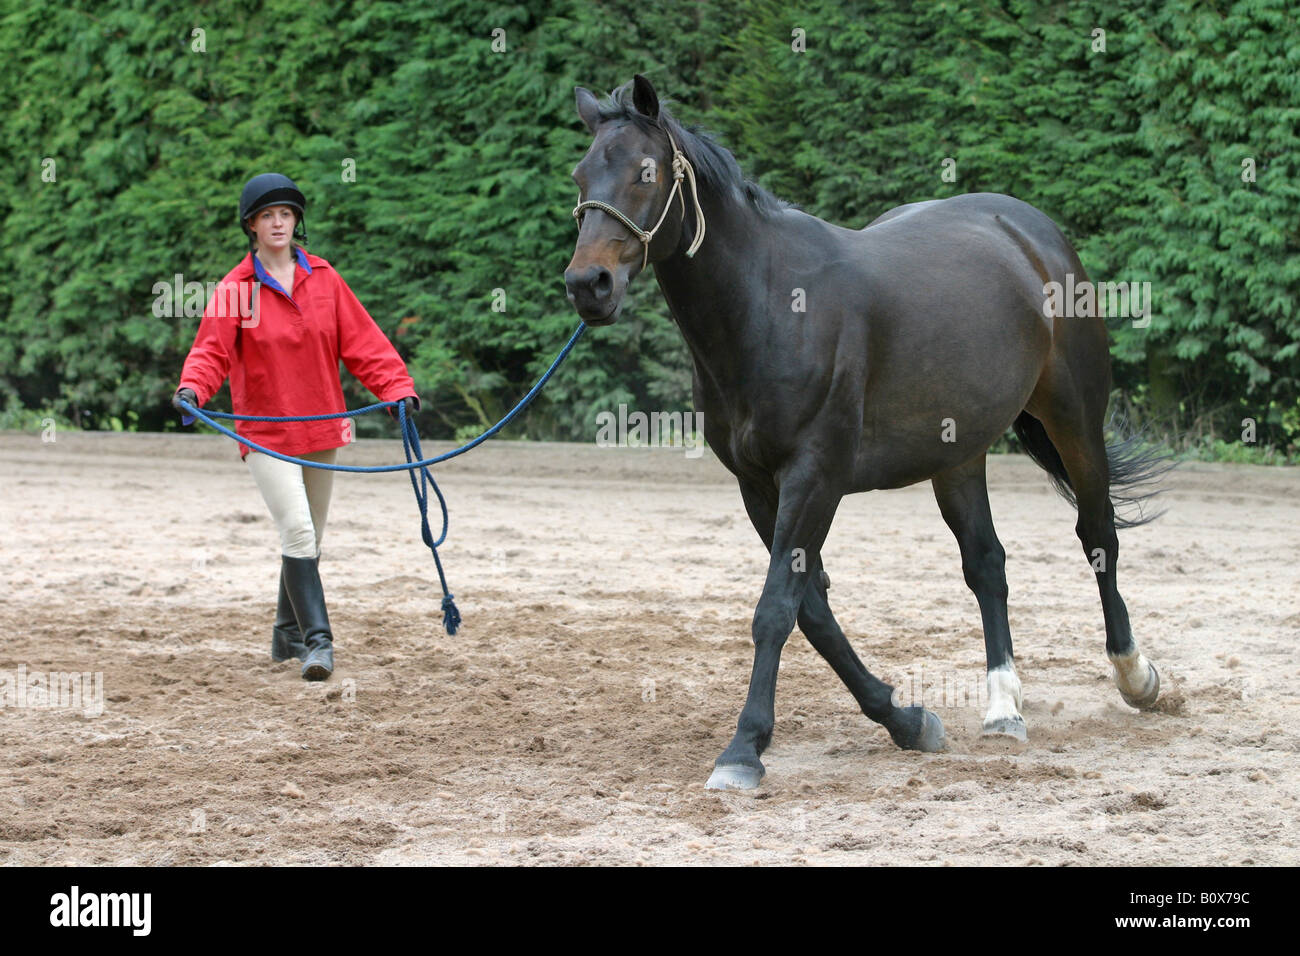 Lunging the adult rider book ready